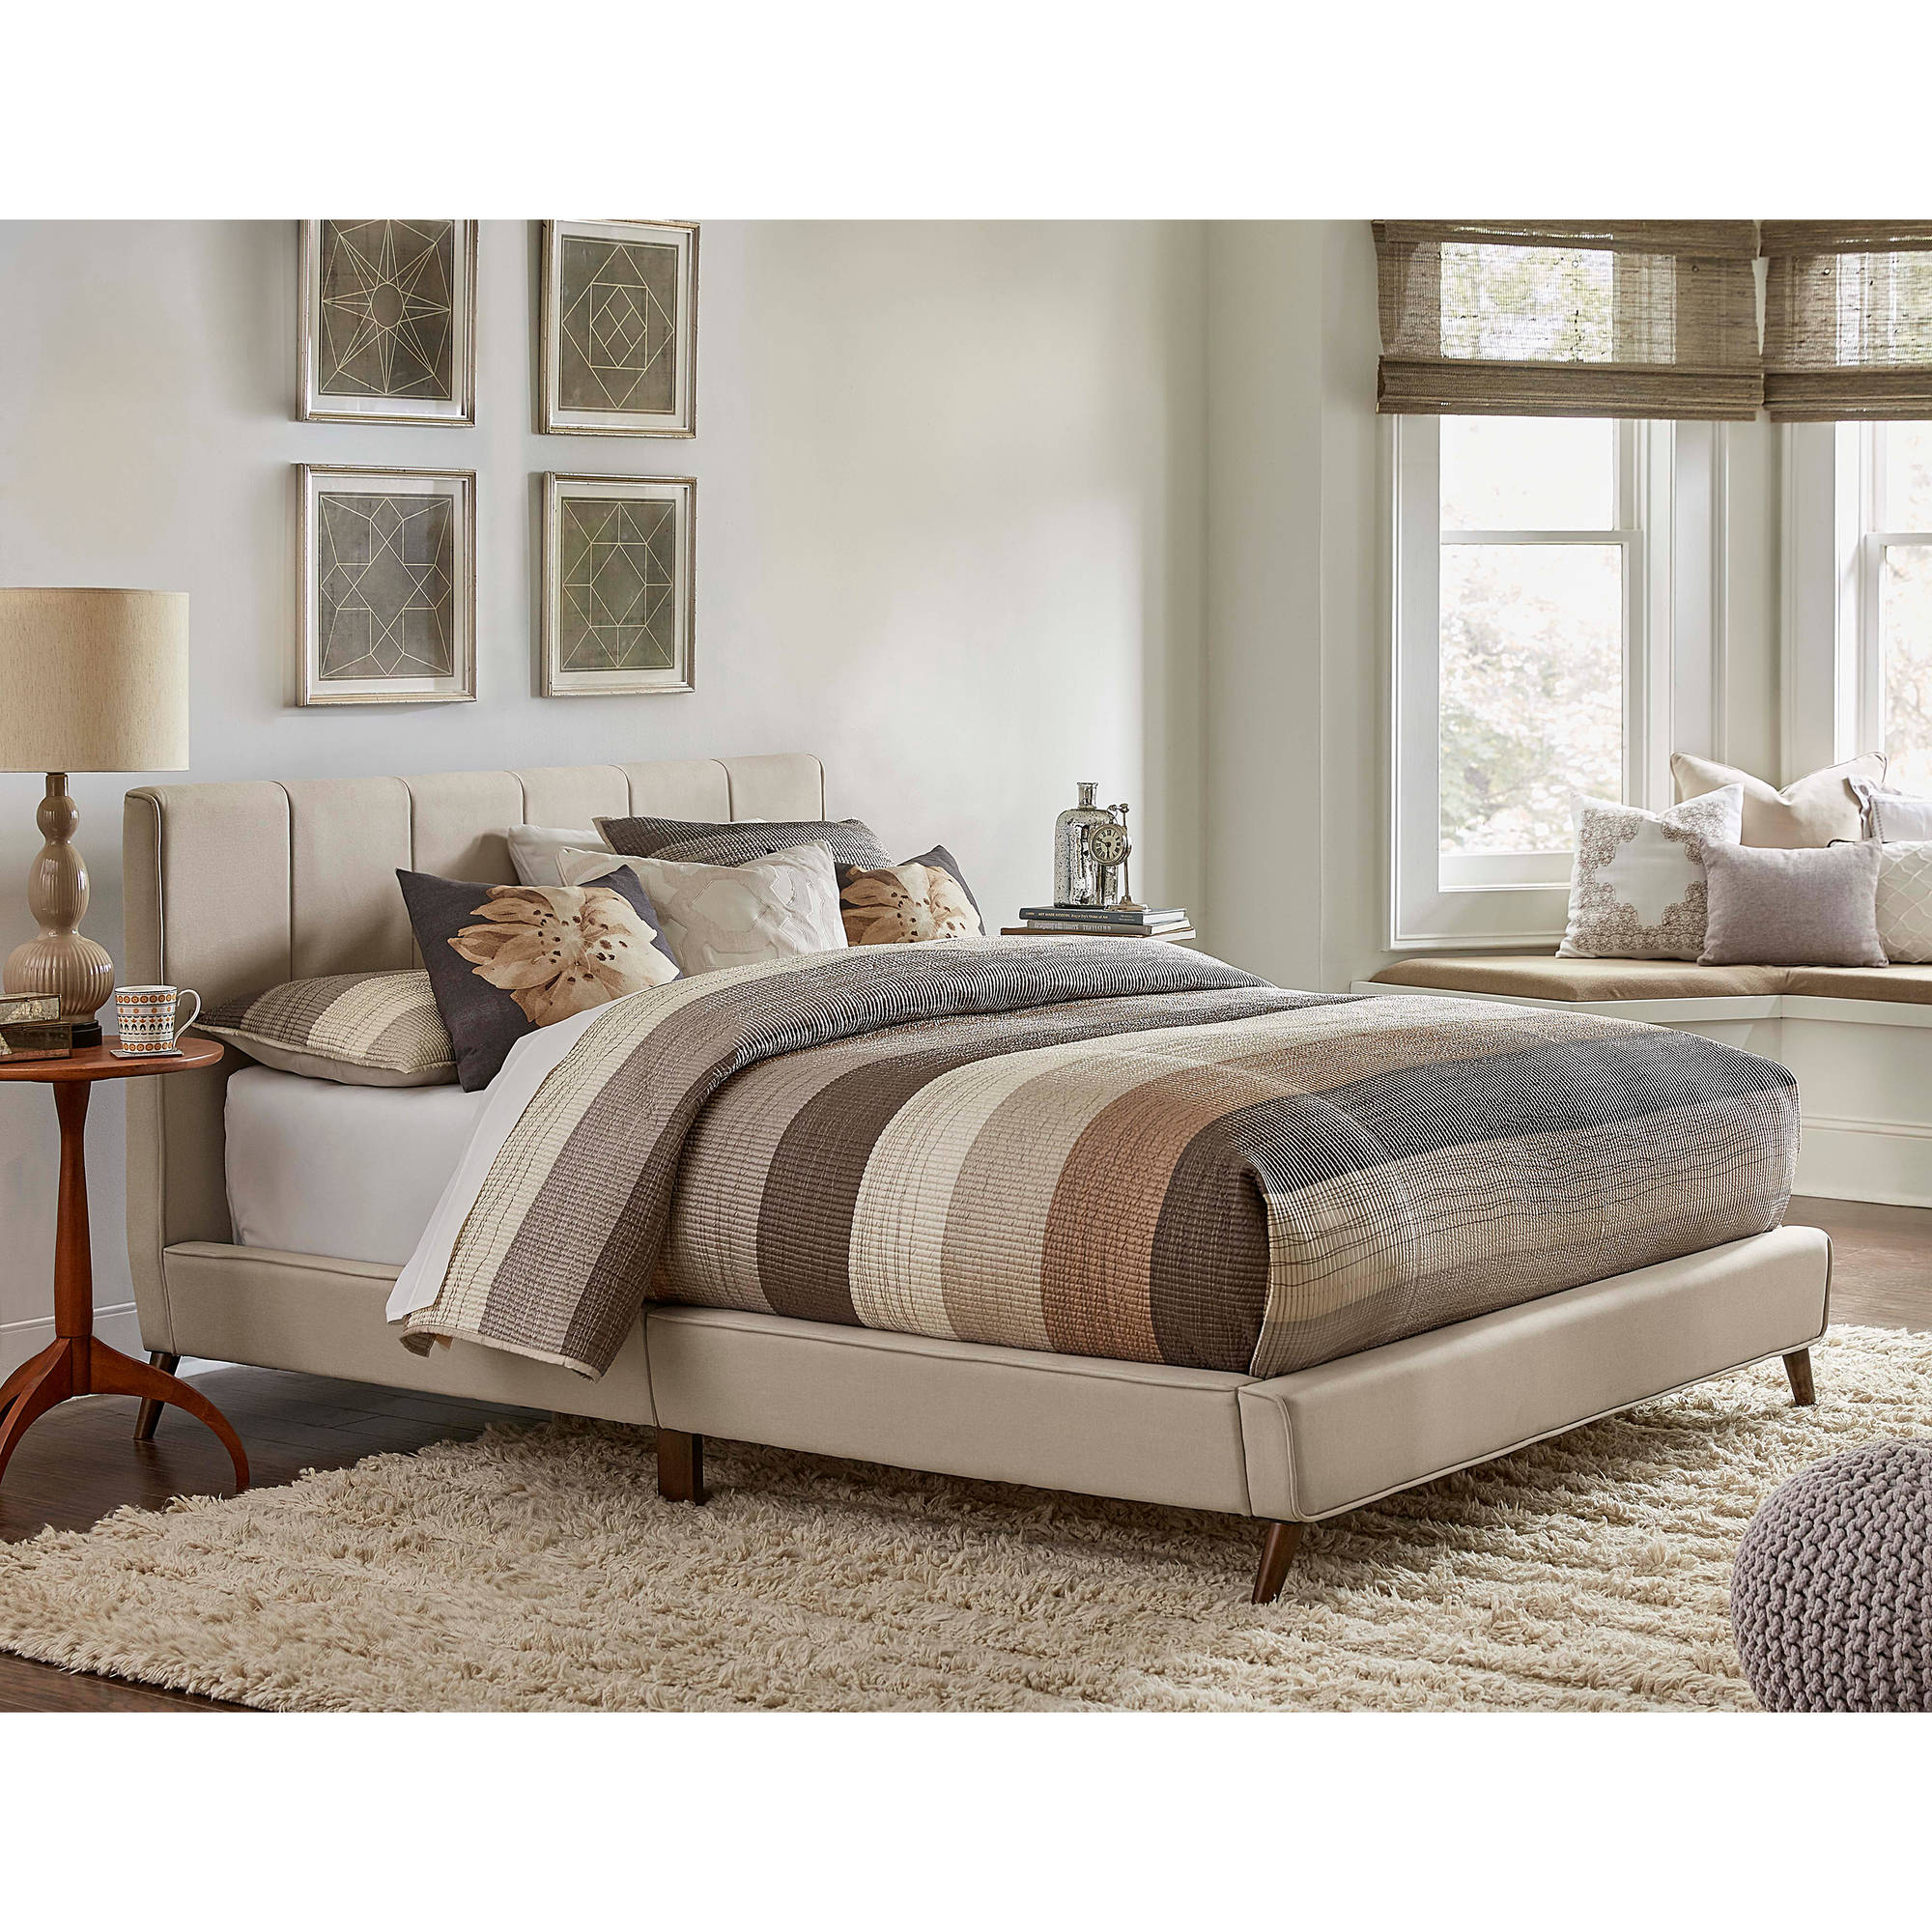 Hillsdale Furniture Aussie Queen Bed with Bedframe by Hillsdale